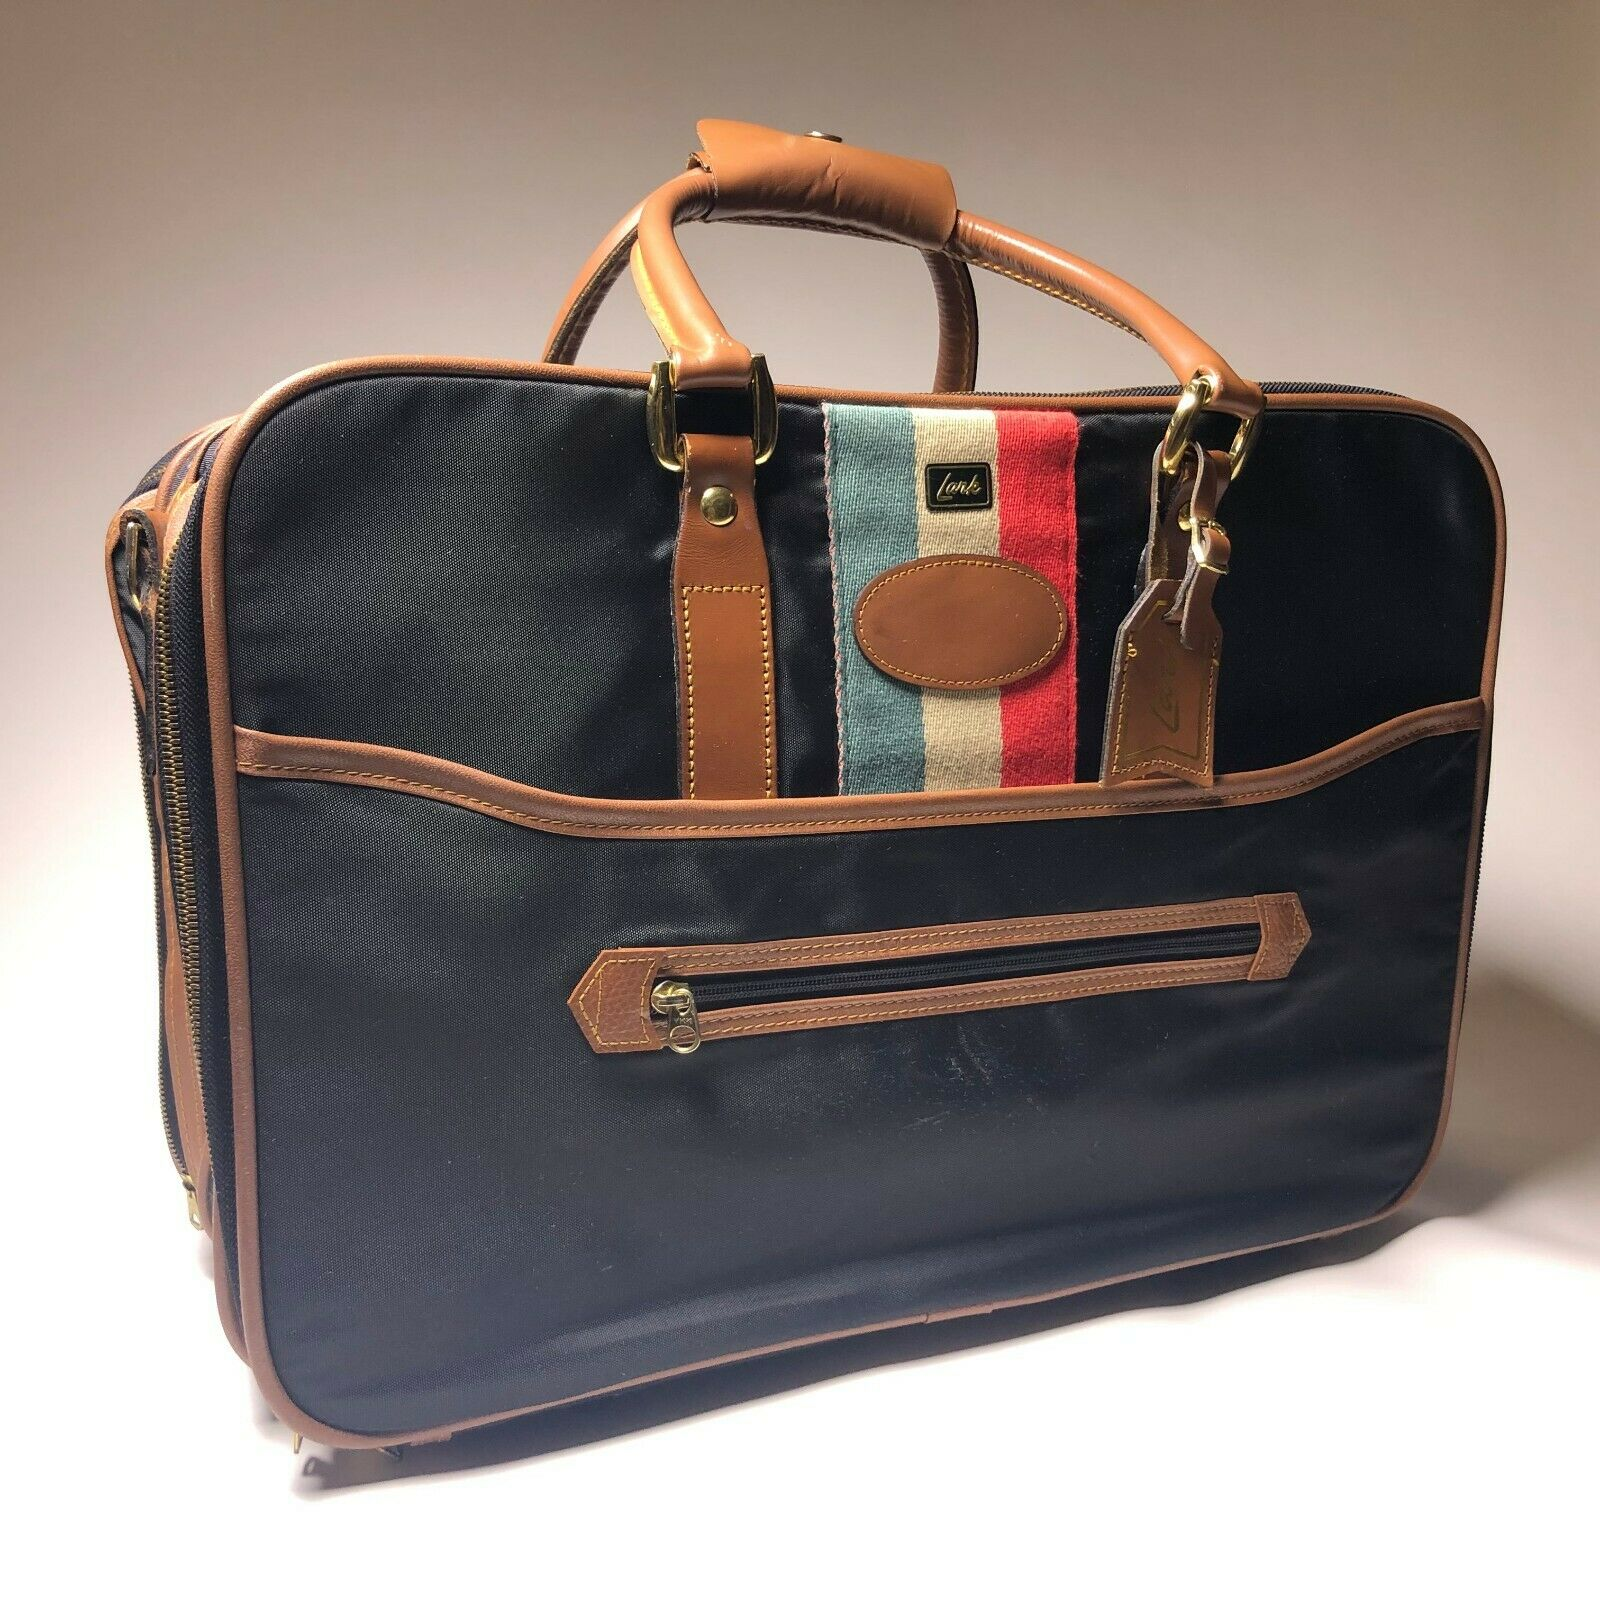 LARK BAG VINTAGE WITH 3 EXPANDABLE LAYERS